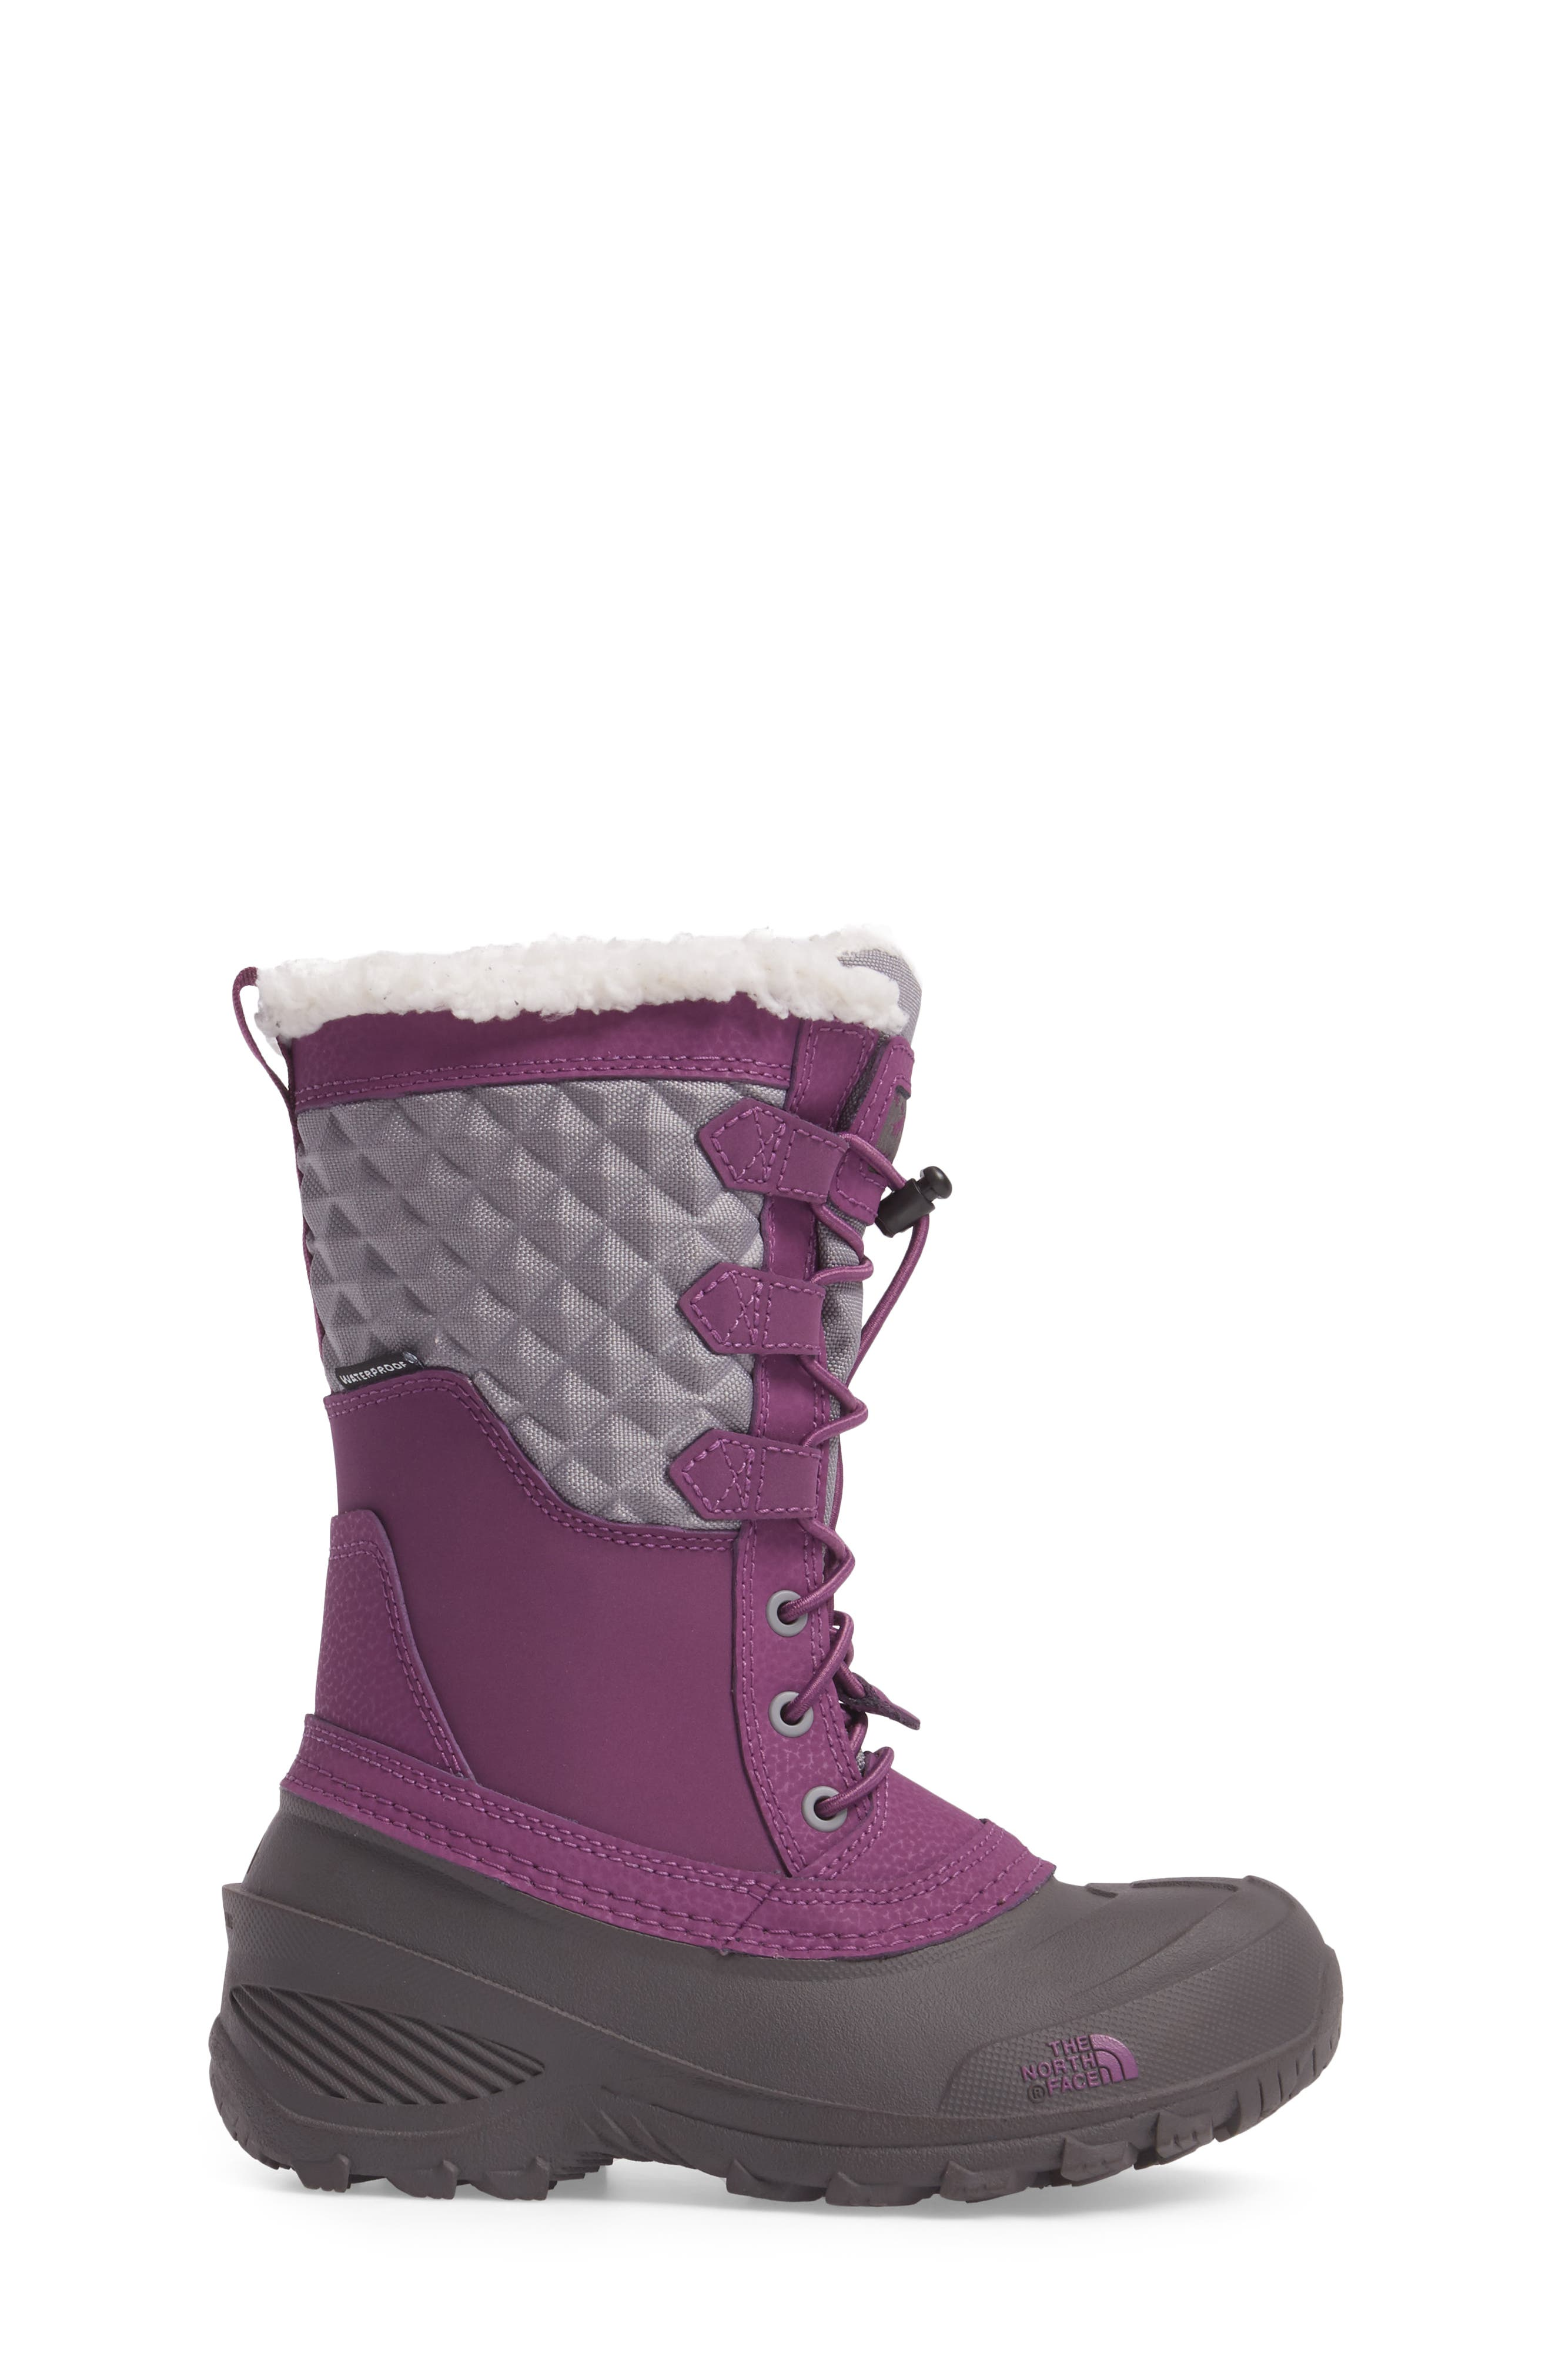 Alternate Image 3  - The North Face Shellista Lace III Faux Fur Waterproof Boot (Toddler, Little Kid & Big Kid)